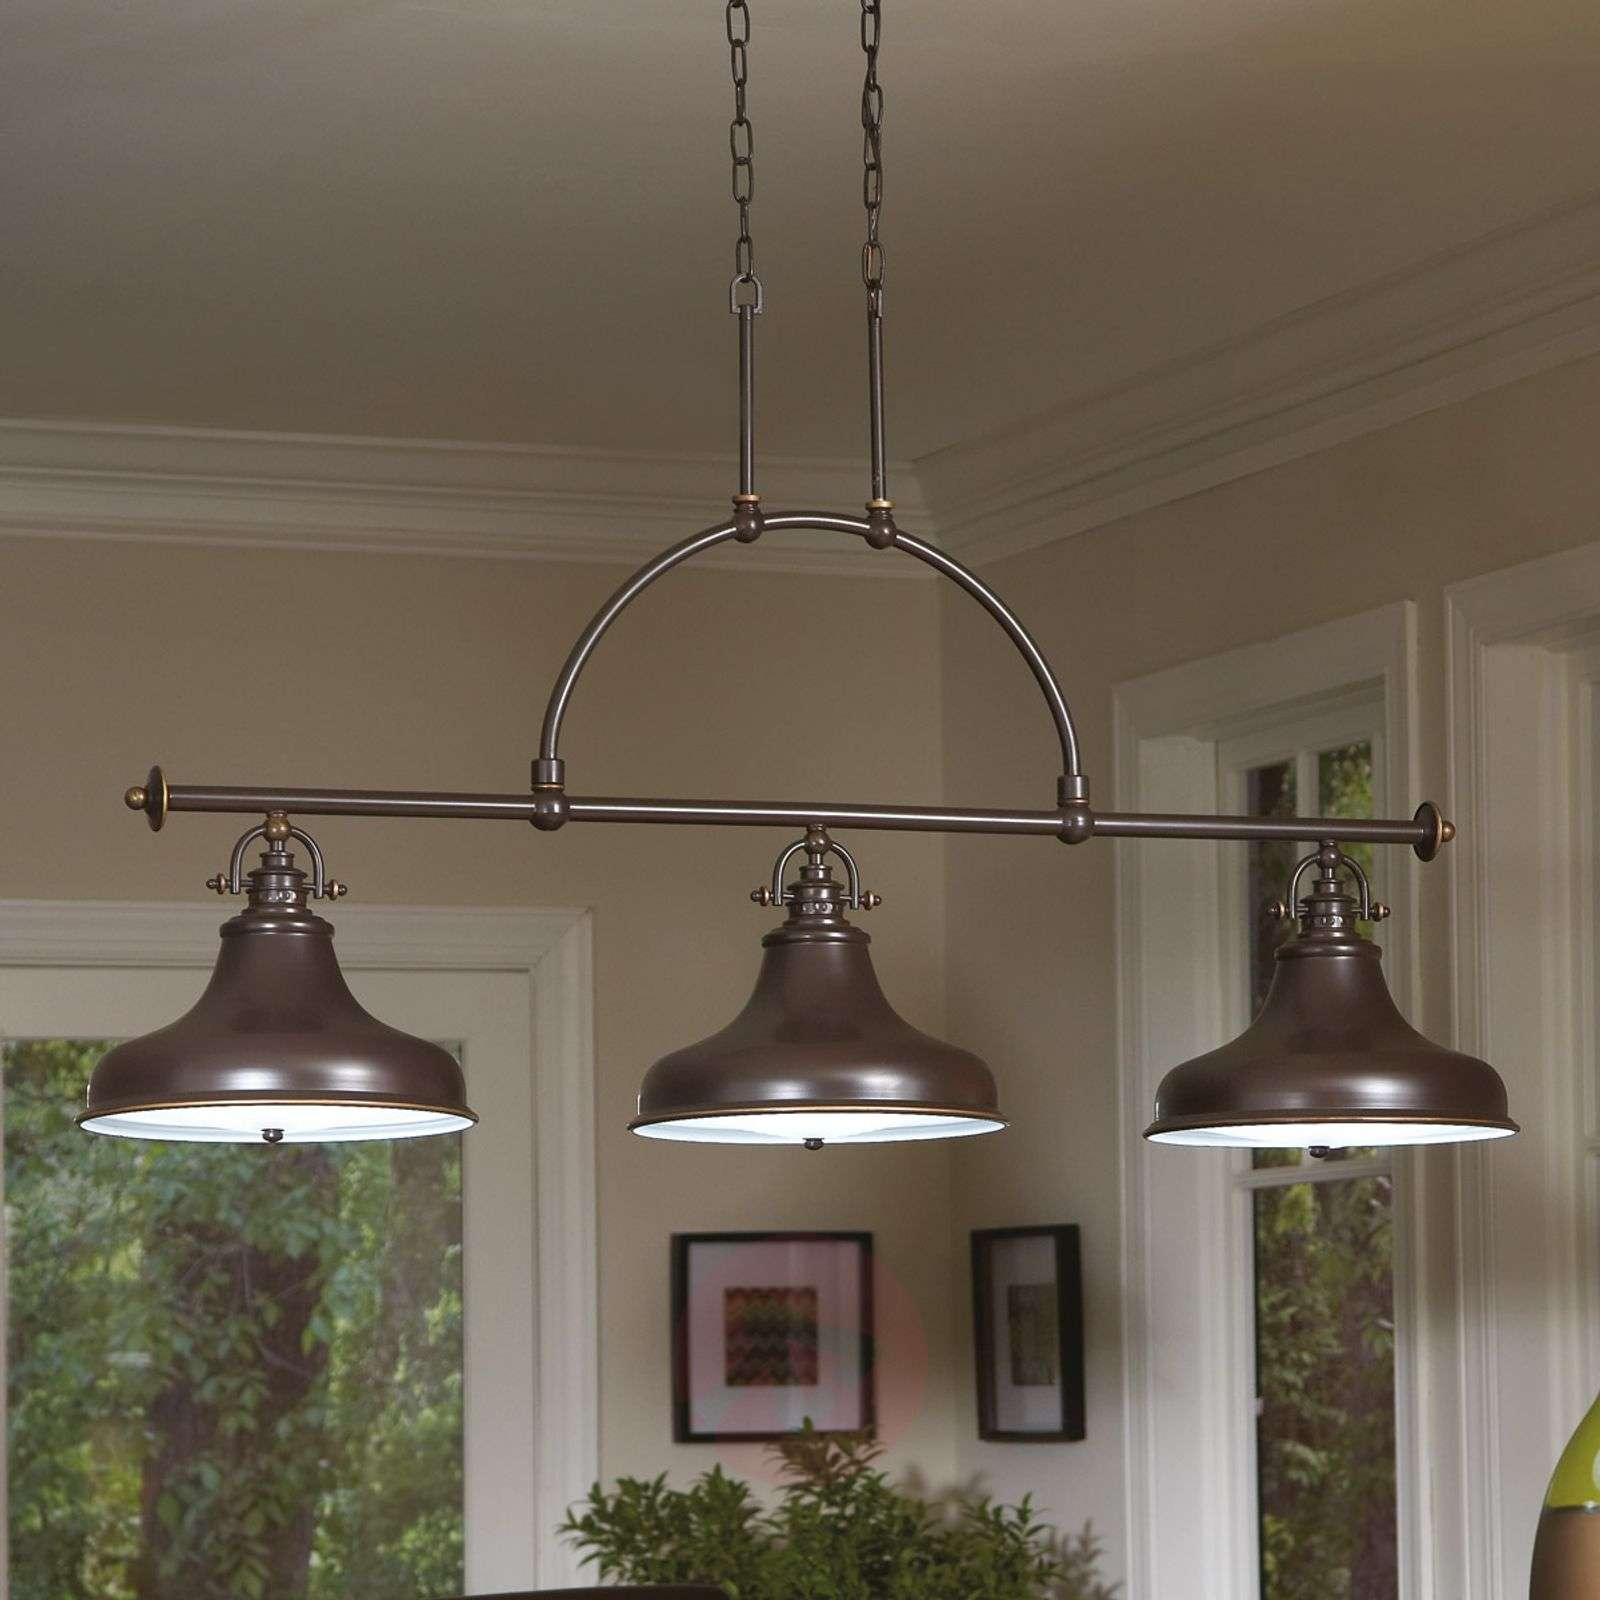 Suspension Emery style industriel bronze 3 lampes-3048324-01